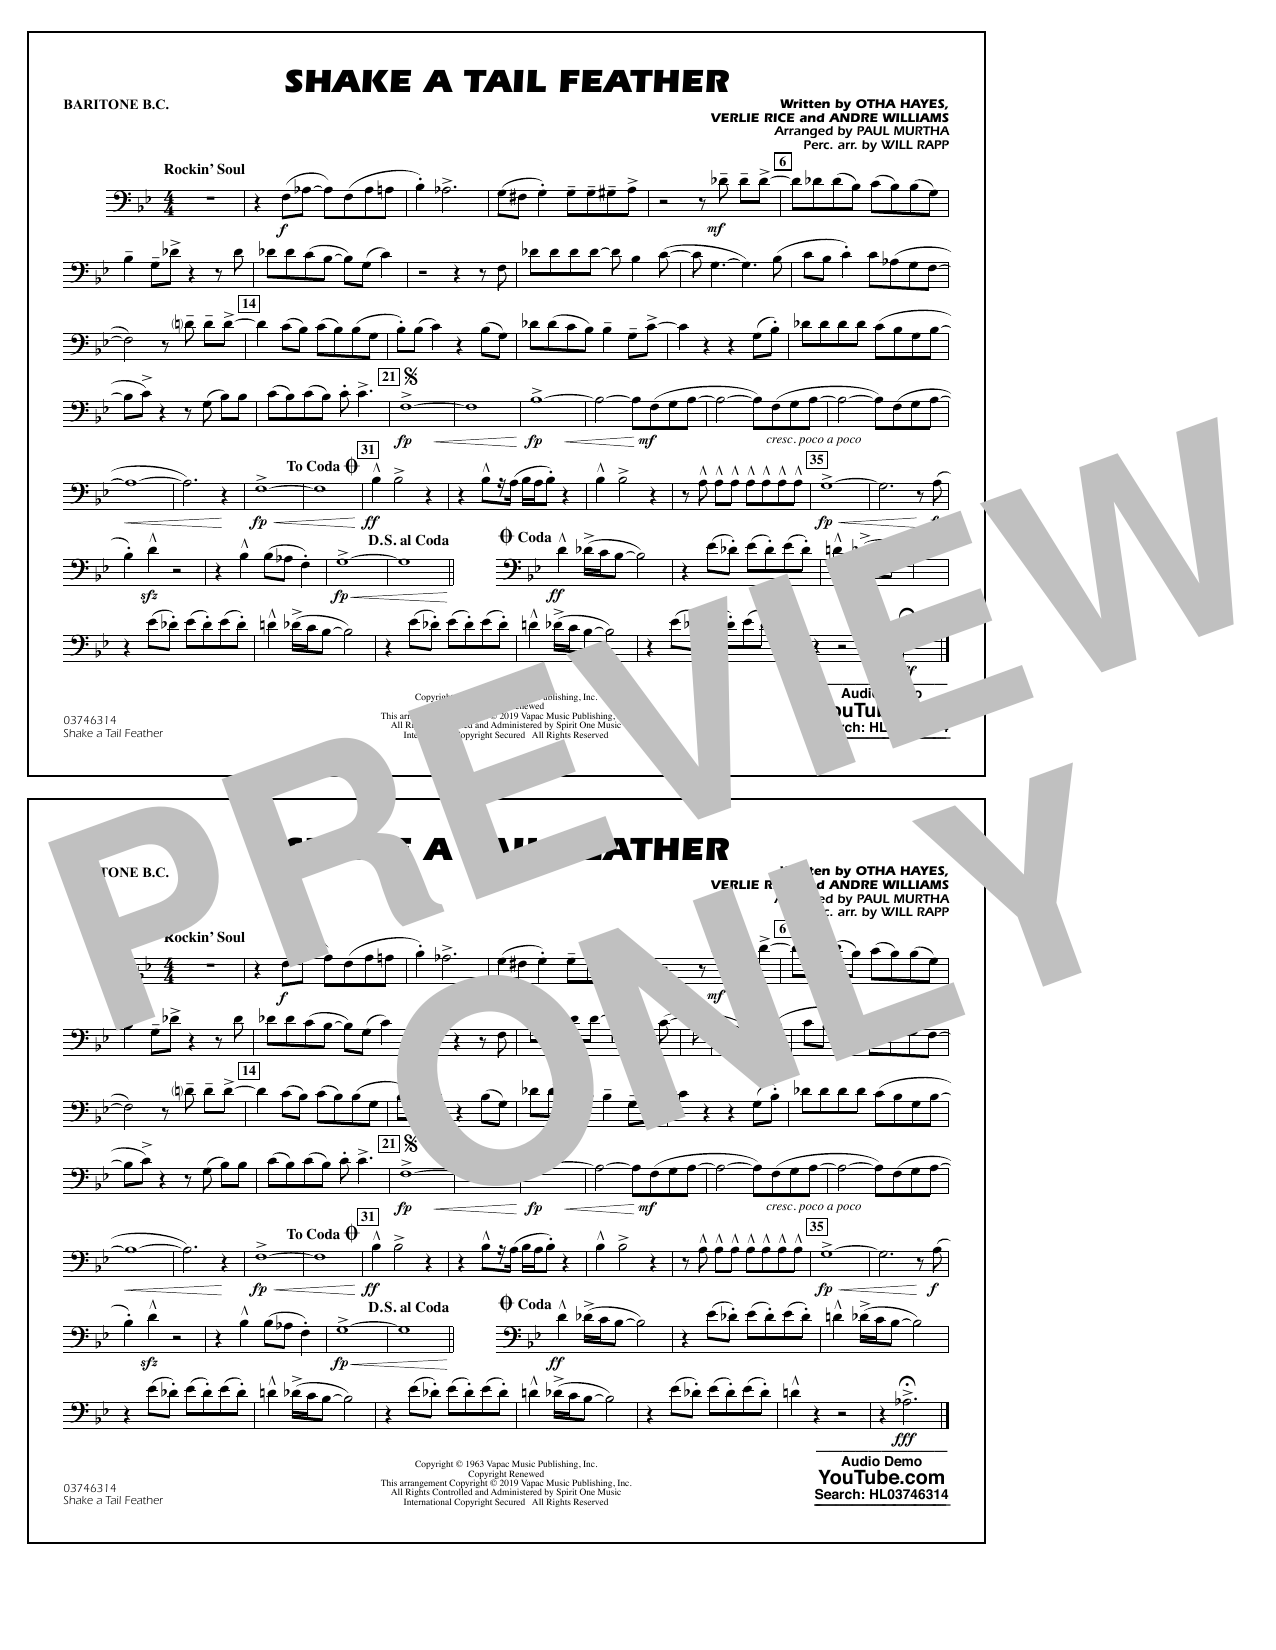 Ray Charles Shake a Tail Feather (arr. Paul Murtha) - Baritone B.C. (Opt. Tbn. 2) sheet music notes and chords. Download Printable PDF.